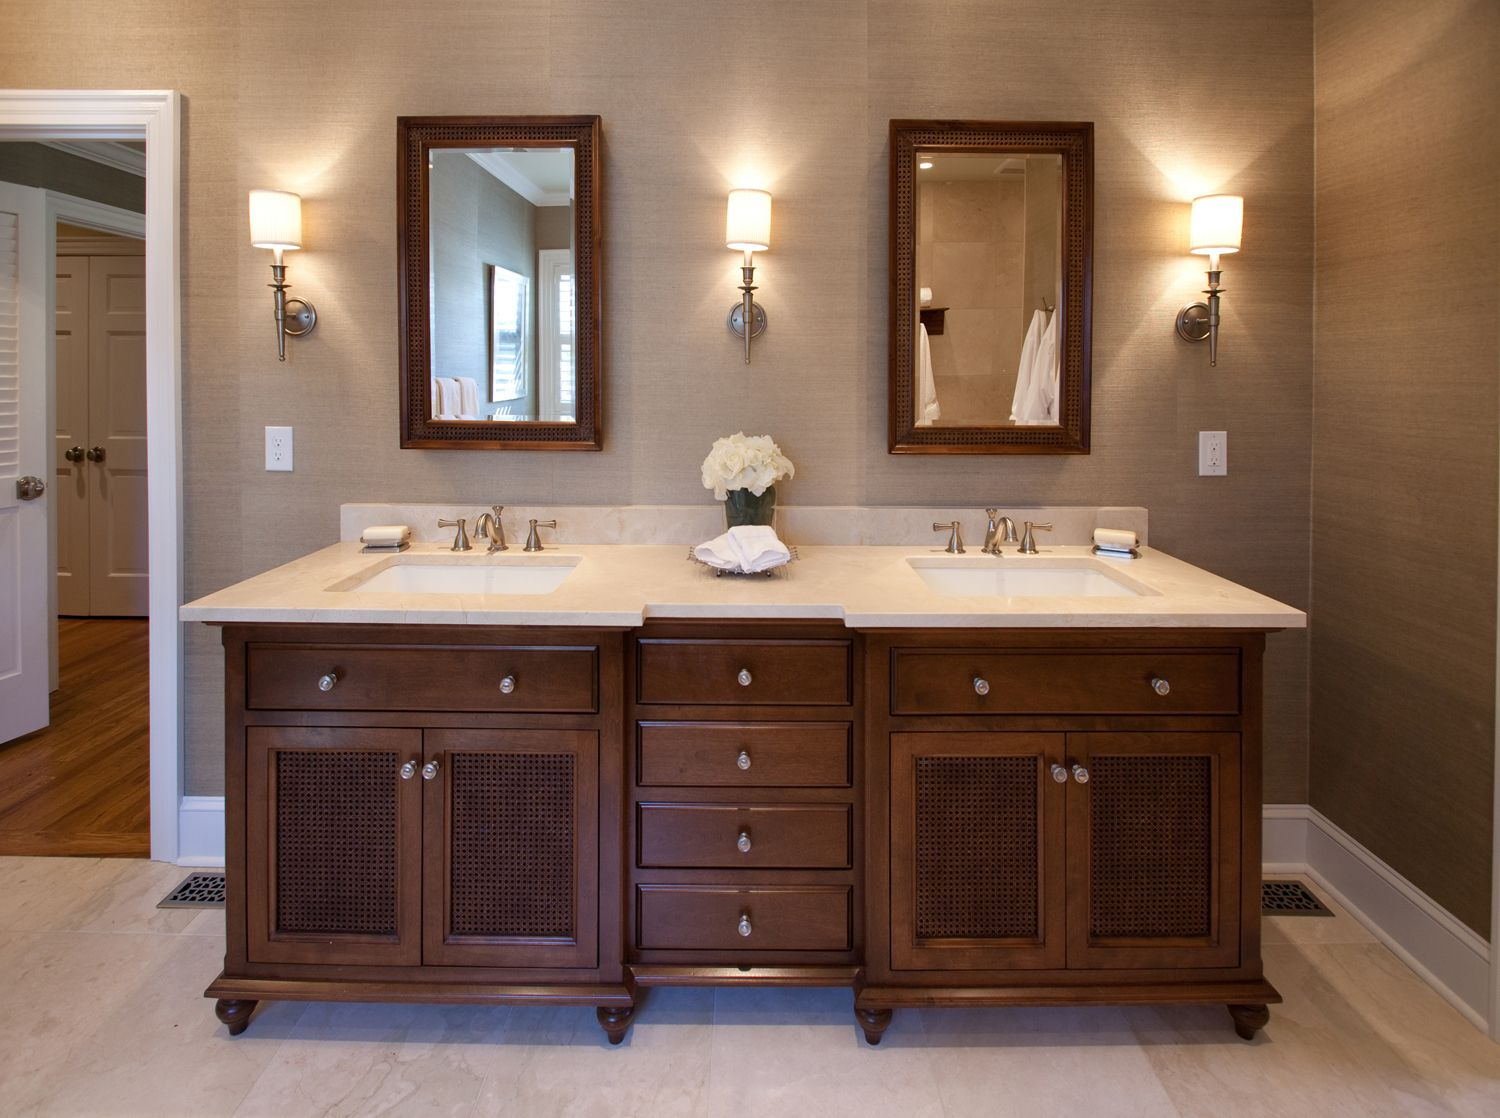 British Colonial Master Bathroom Double Vanity Grasscloth By Loftus Design Bathrooms